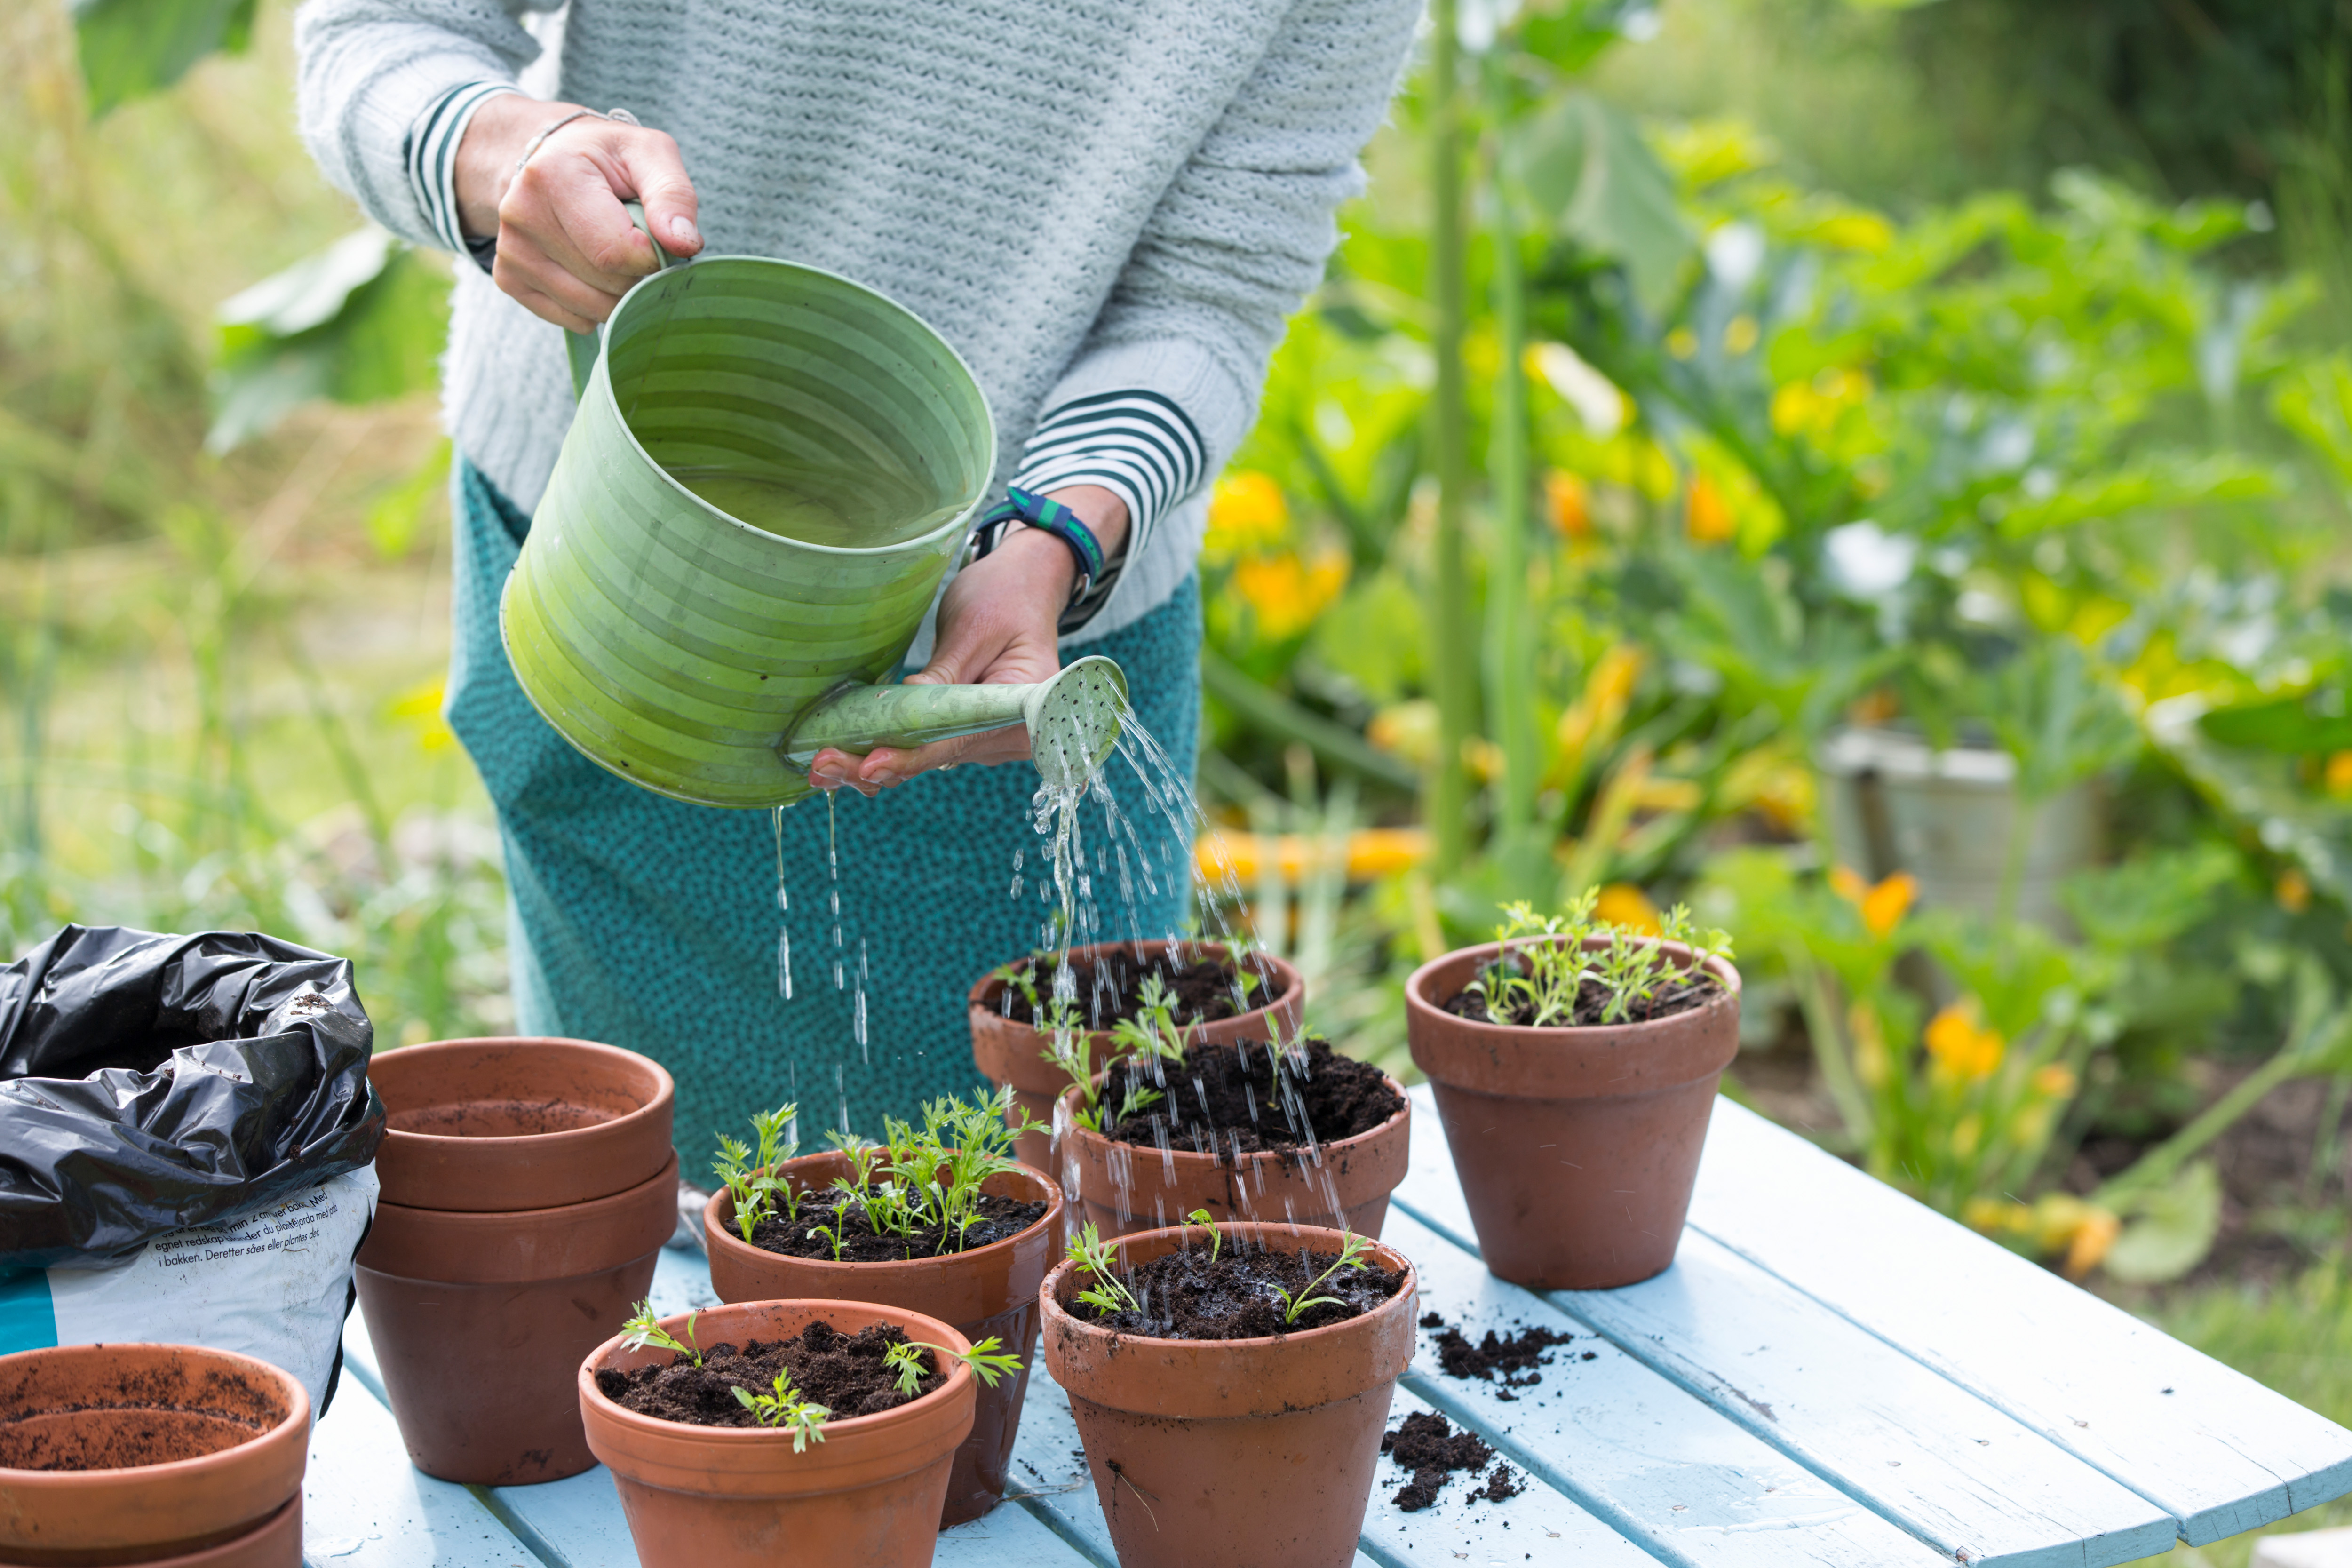 The Beginner's Guide to Propagating Plants